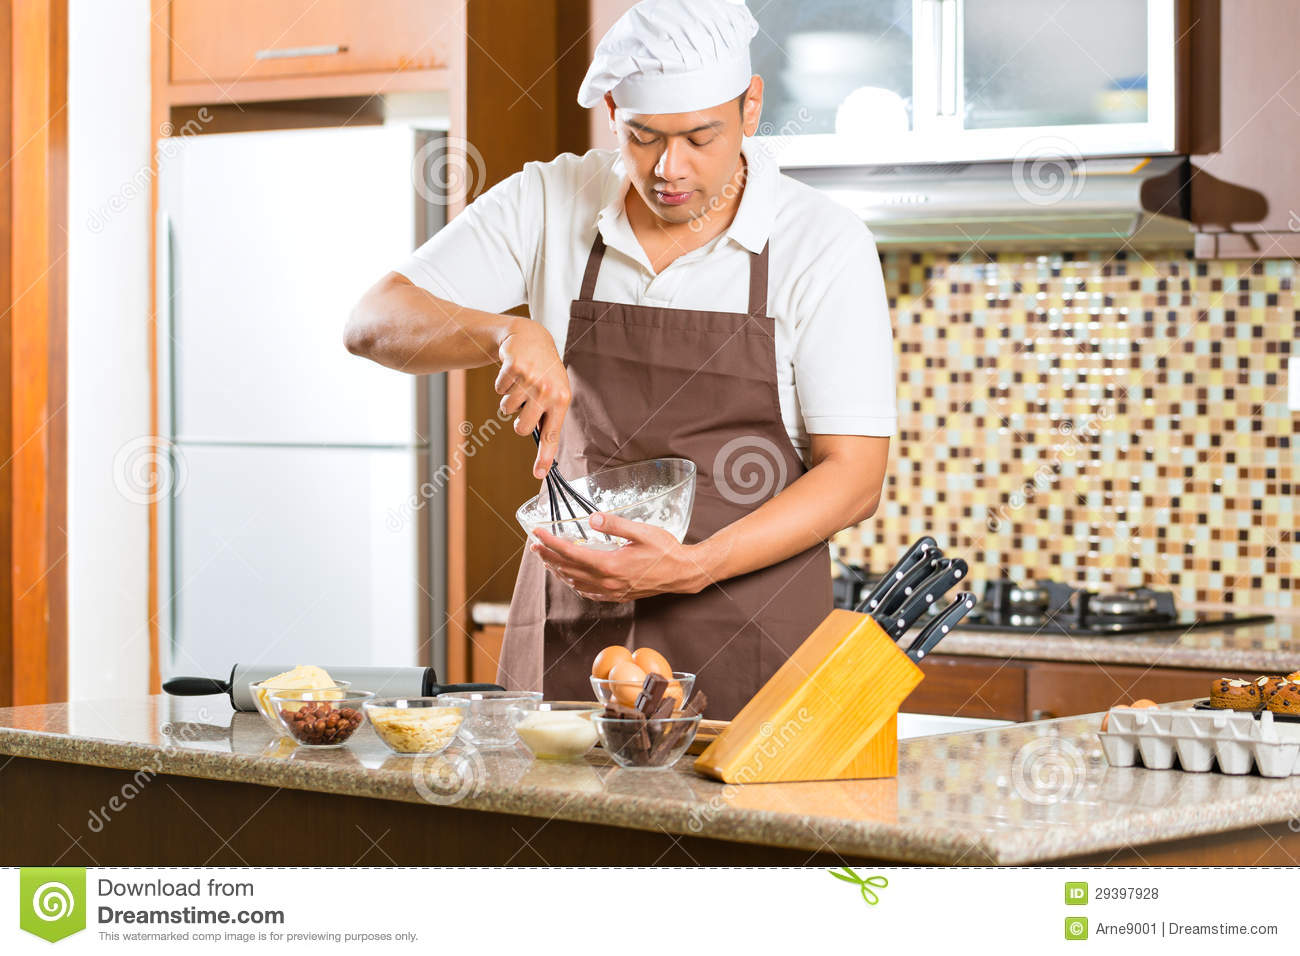 Kitchen For Baking ~ Asian man baking cake in home kitchen stock photo image